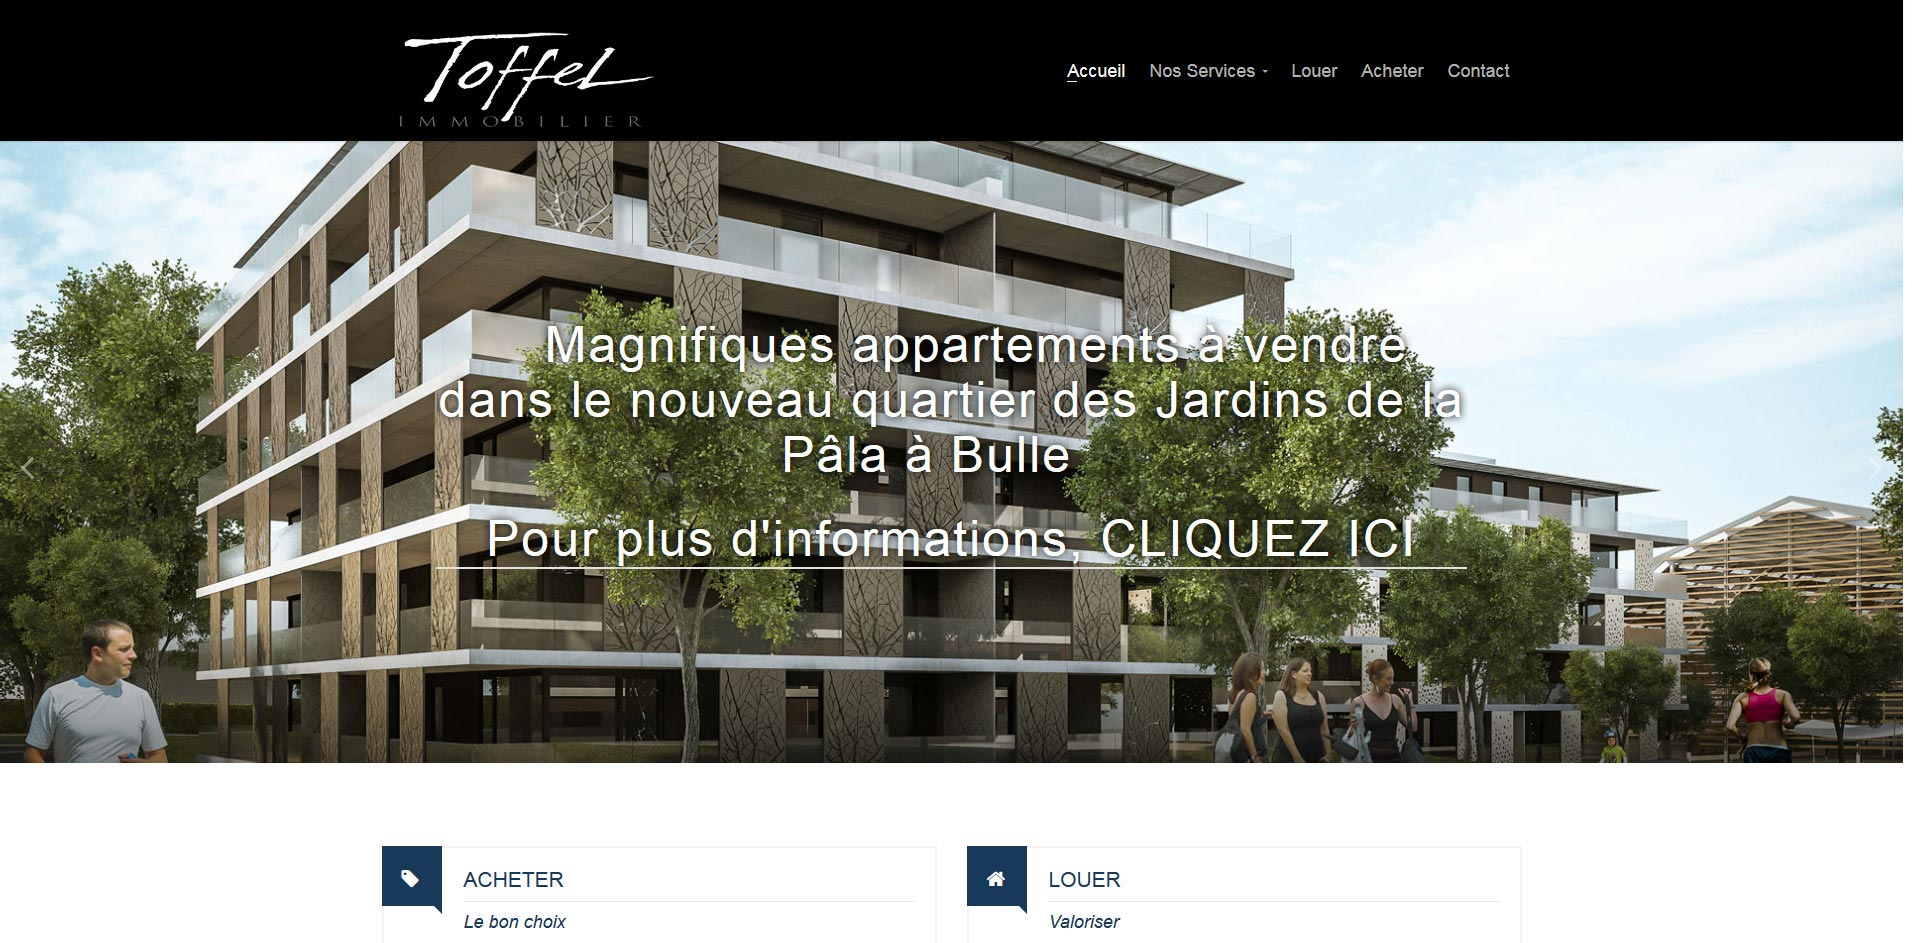 THALES IT - Réalisation sites Internet - Toffel Immobilier SA